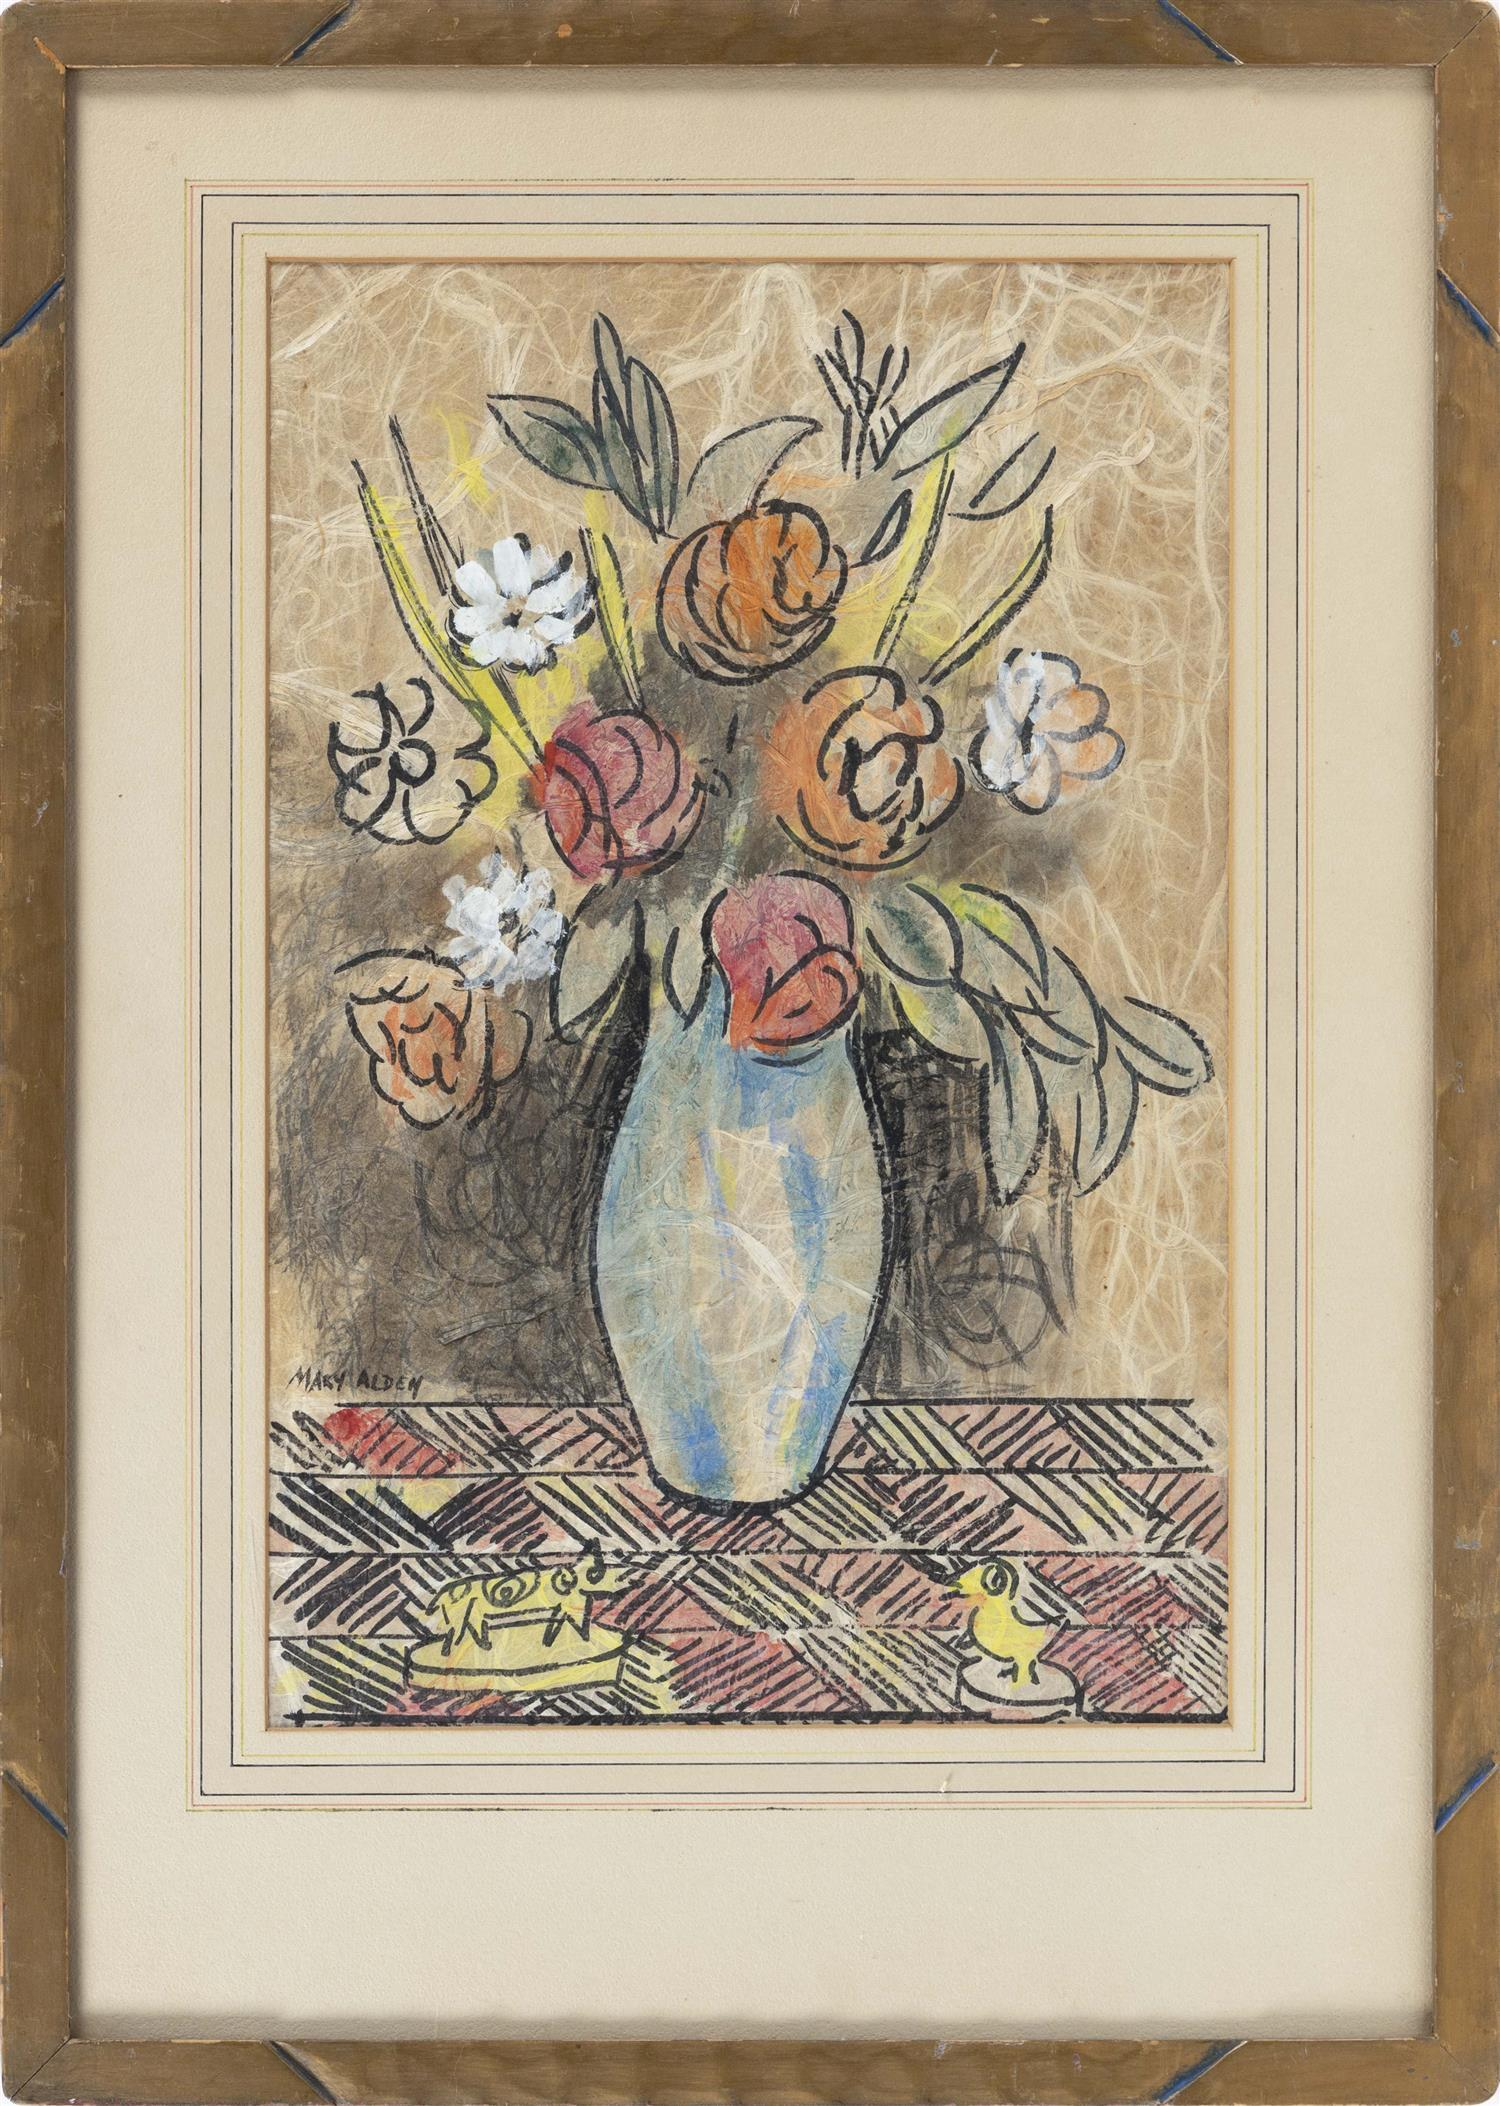 """MARY ALDEN, America, 20th Century, Floral still life., Hand-touched print on woven paper, 19"""" x 12.5"""". Framed 27"""" x 19.5""""."""